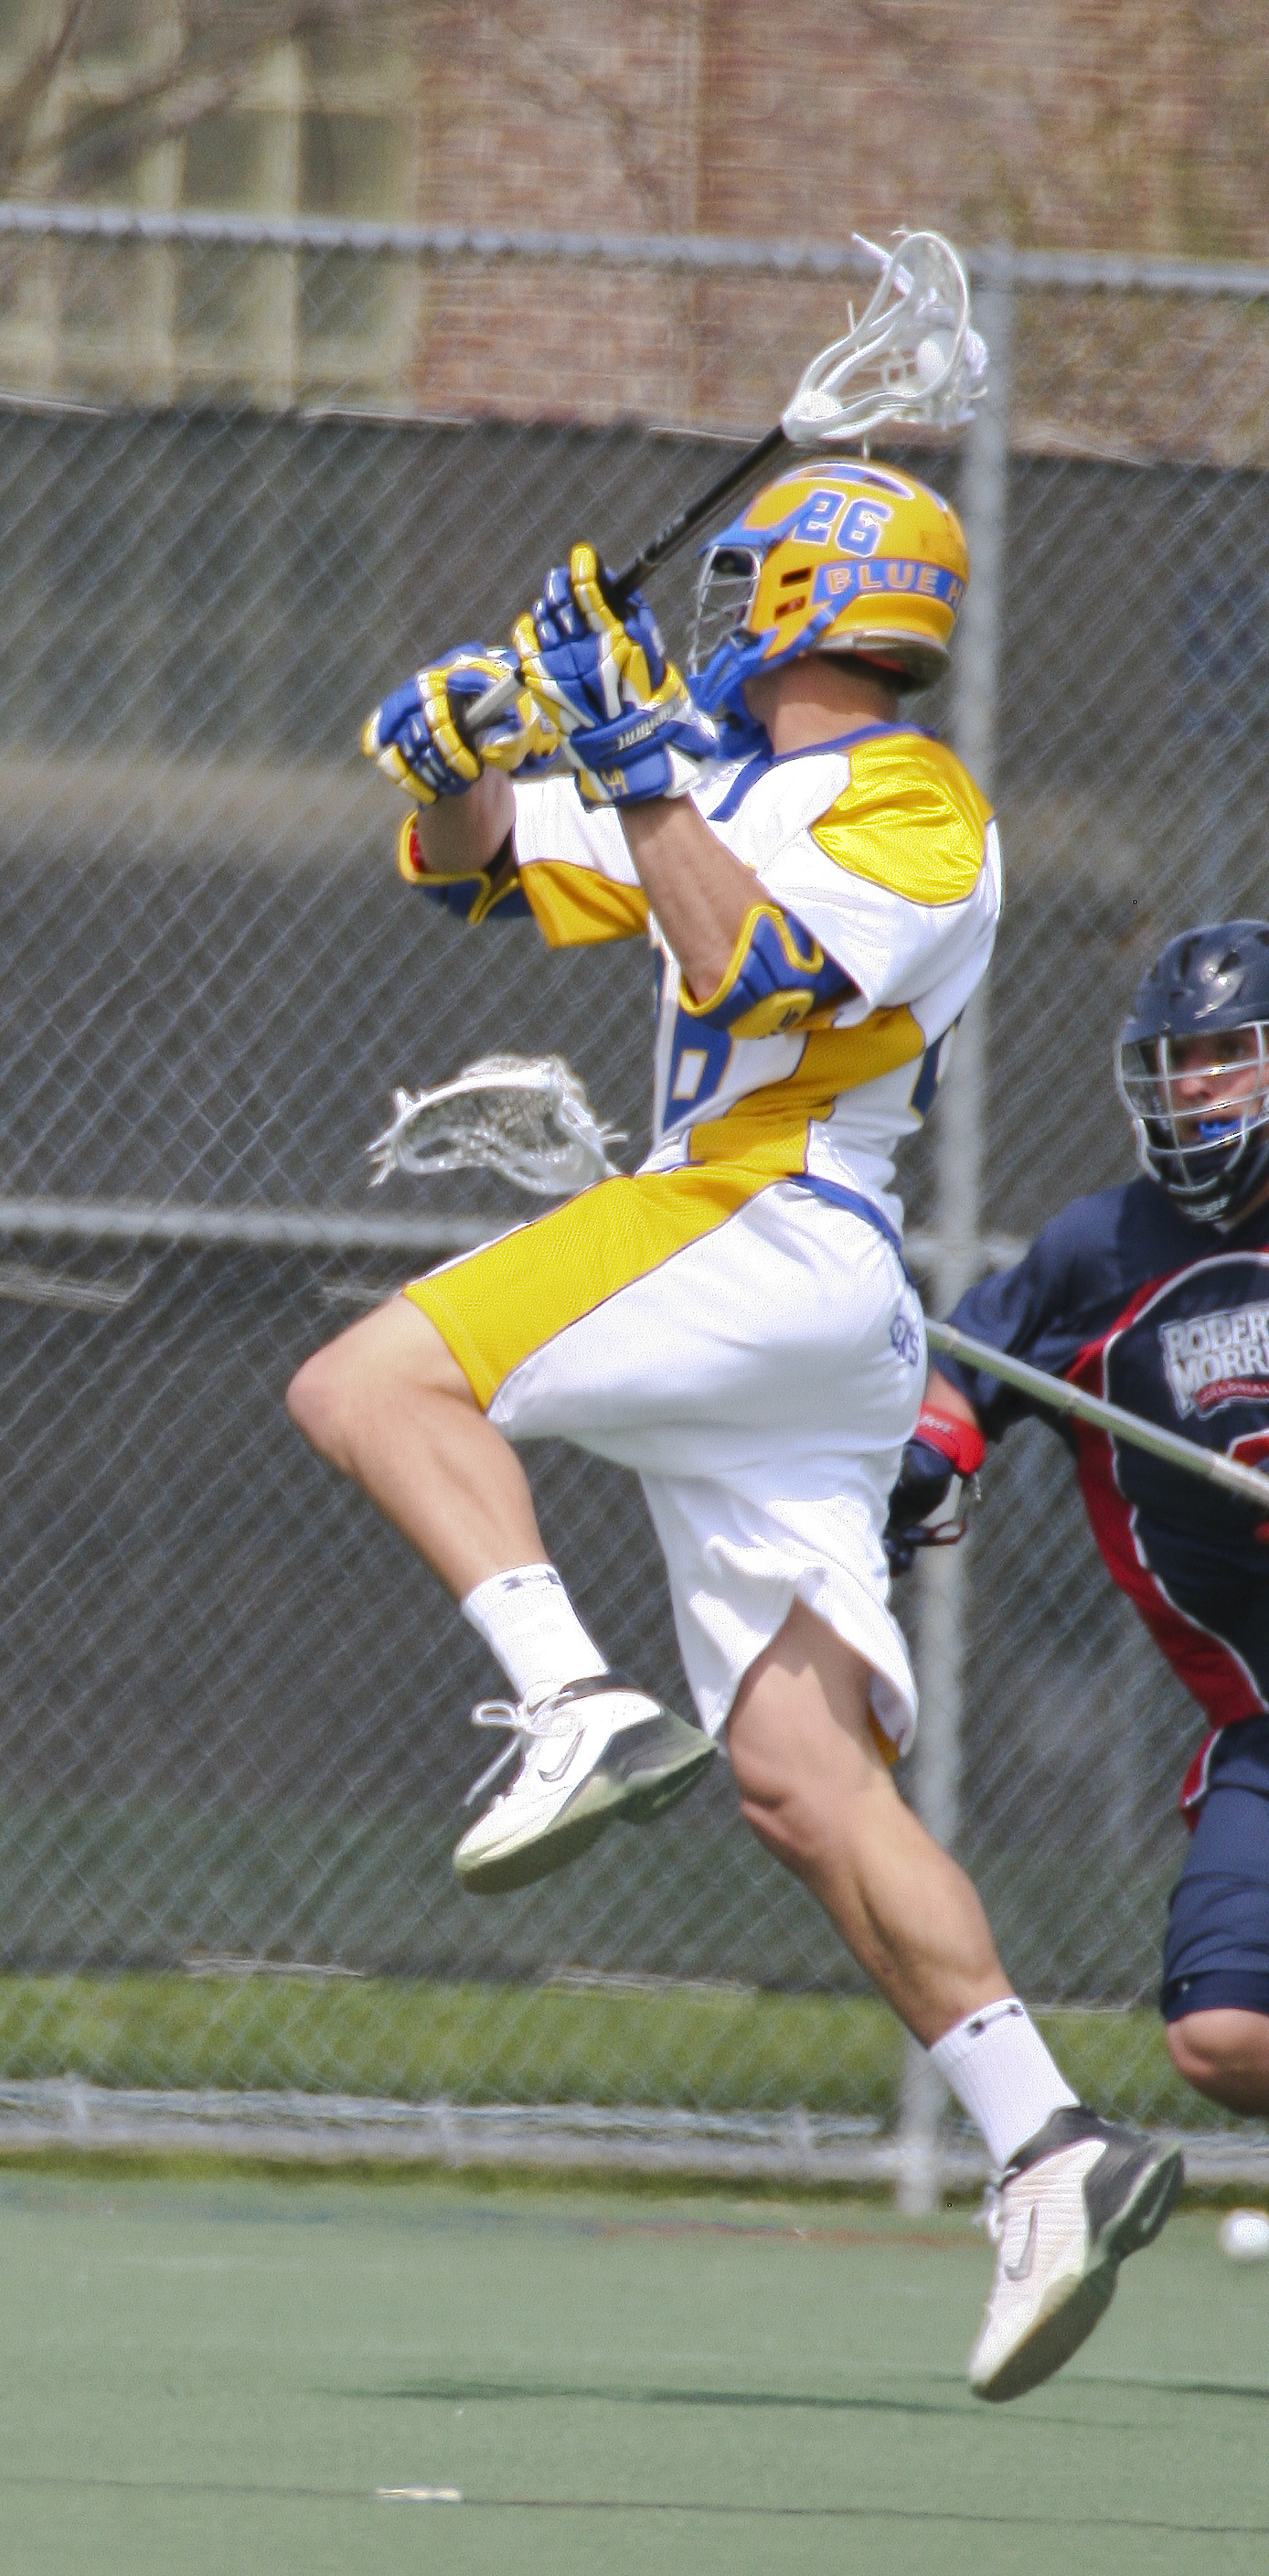 science in a lacrosse shot Physics in lacrosse anthony larsen a lacrosse shot is fired at about 90 or 100 miles per hour sports science video.